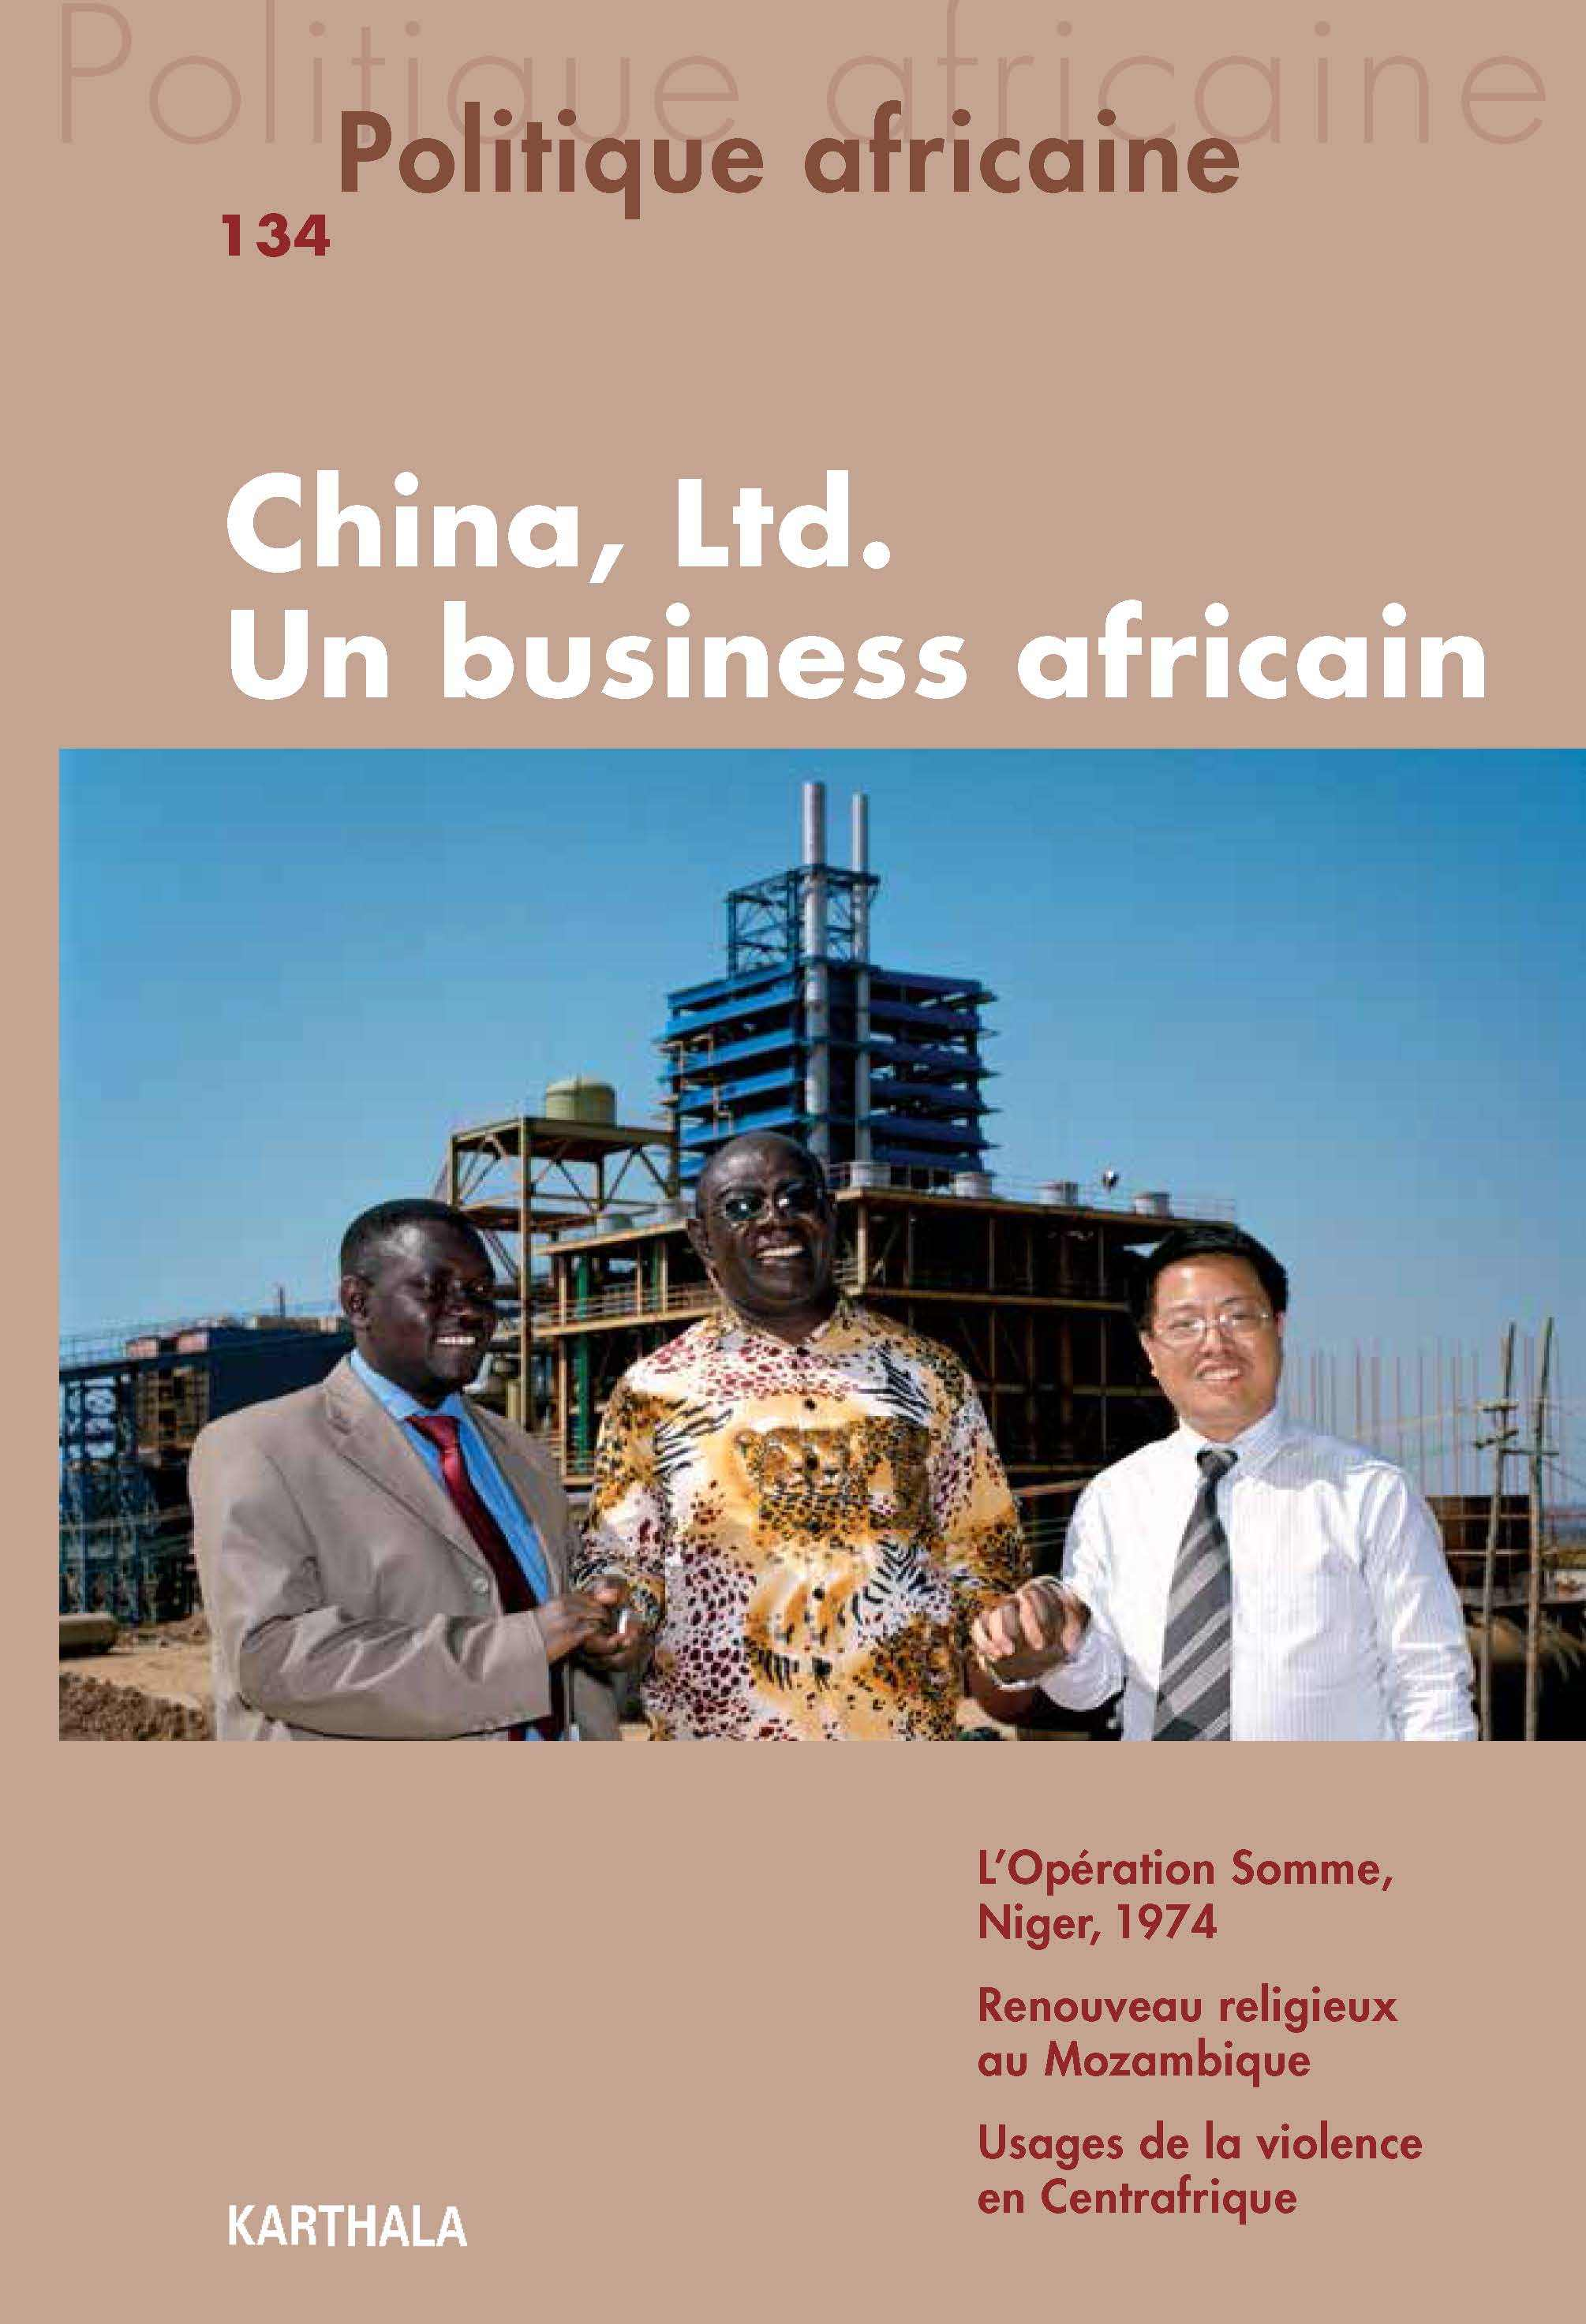 POLITIQUE AFRICAINE N-134 CHINA, LTD. UN BUSINESS AFRICAIN